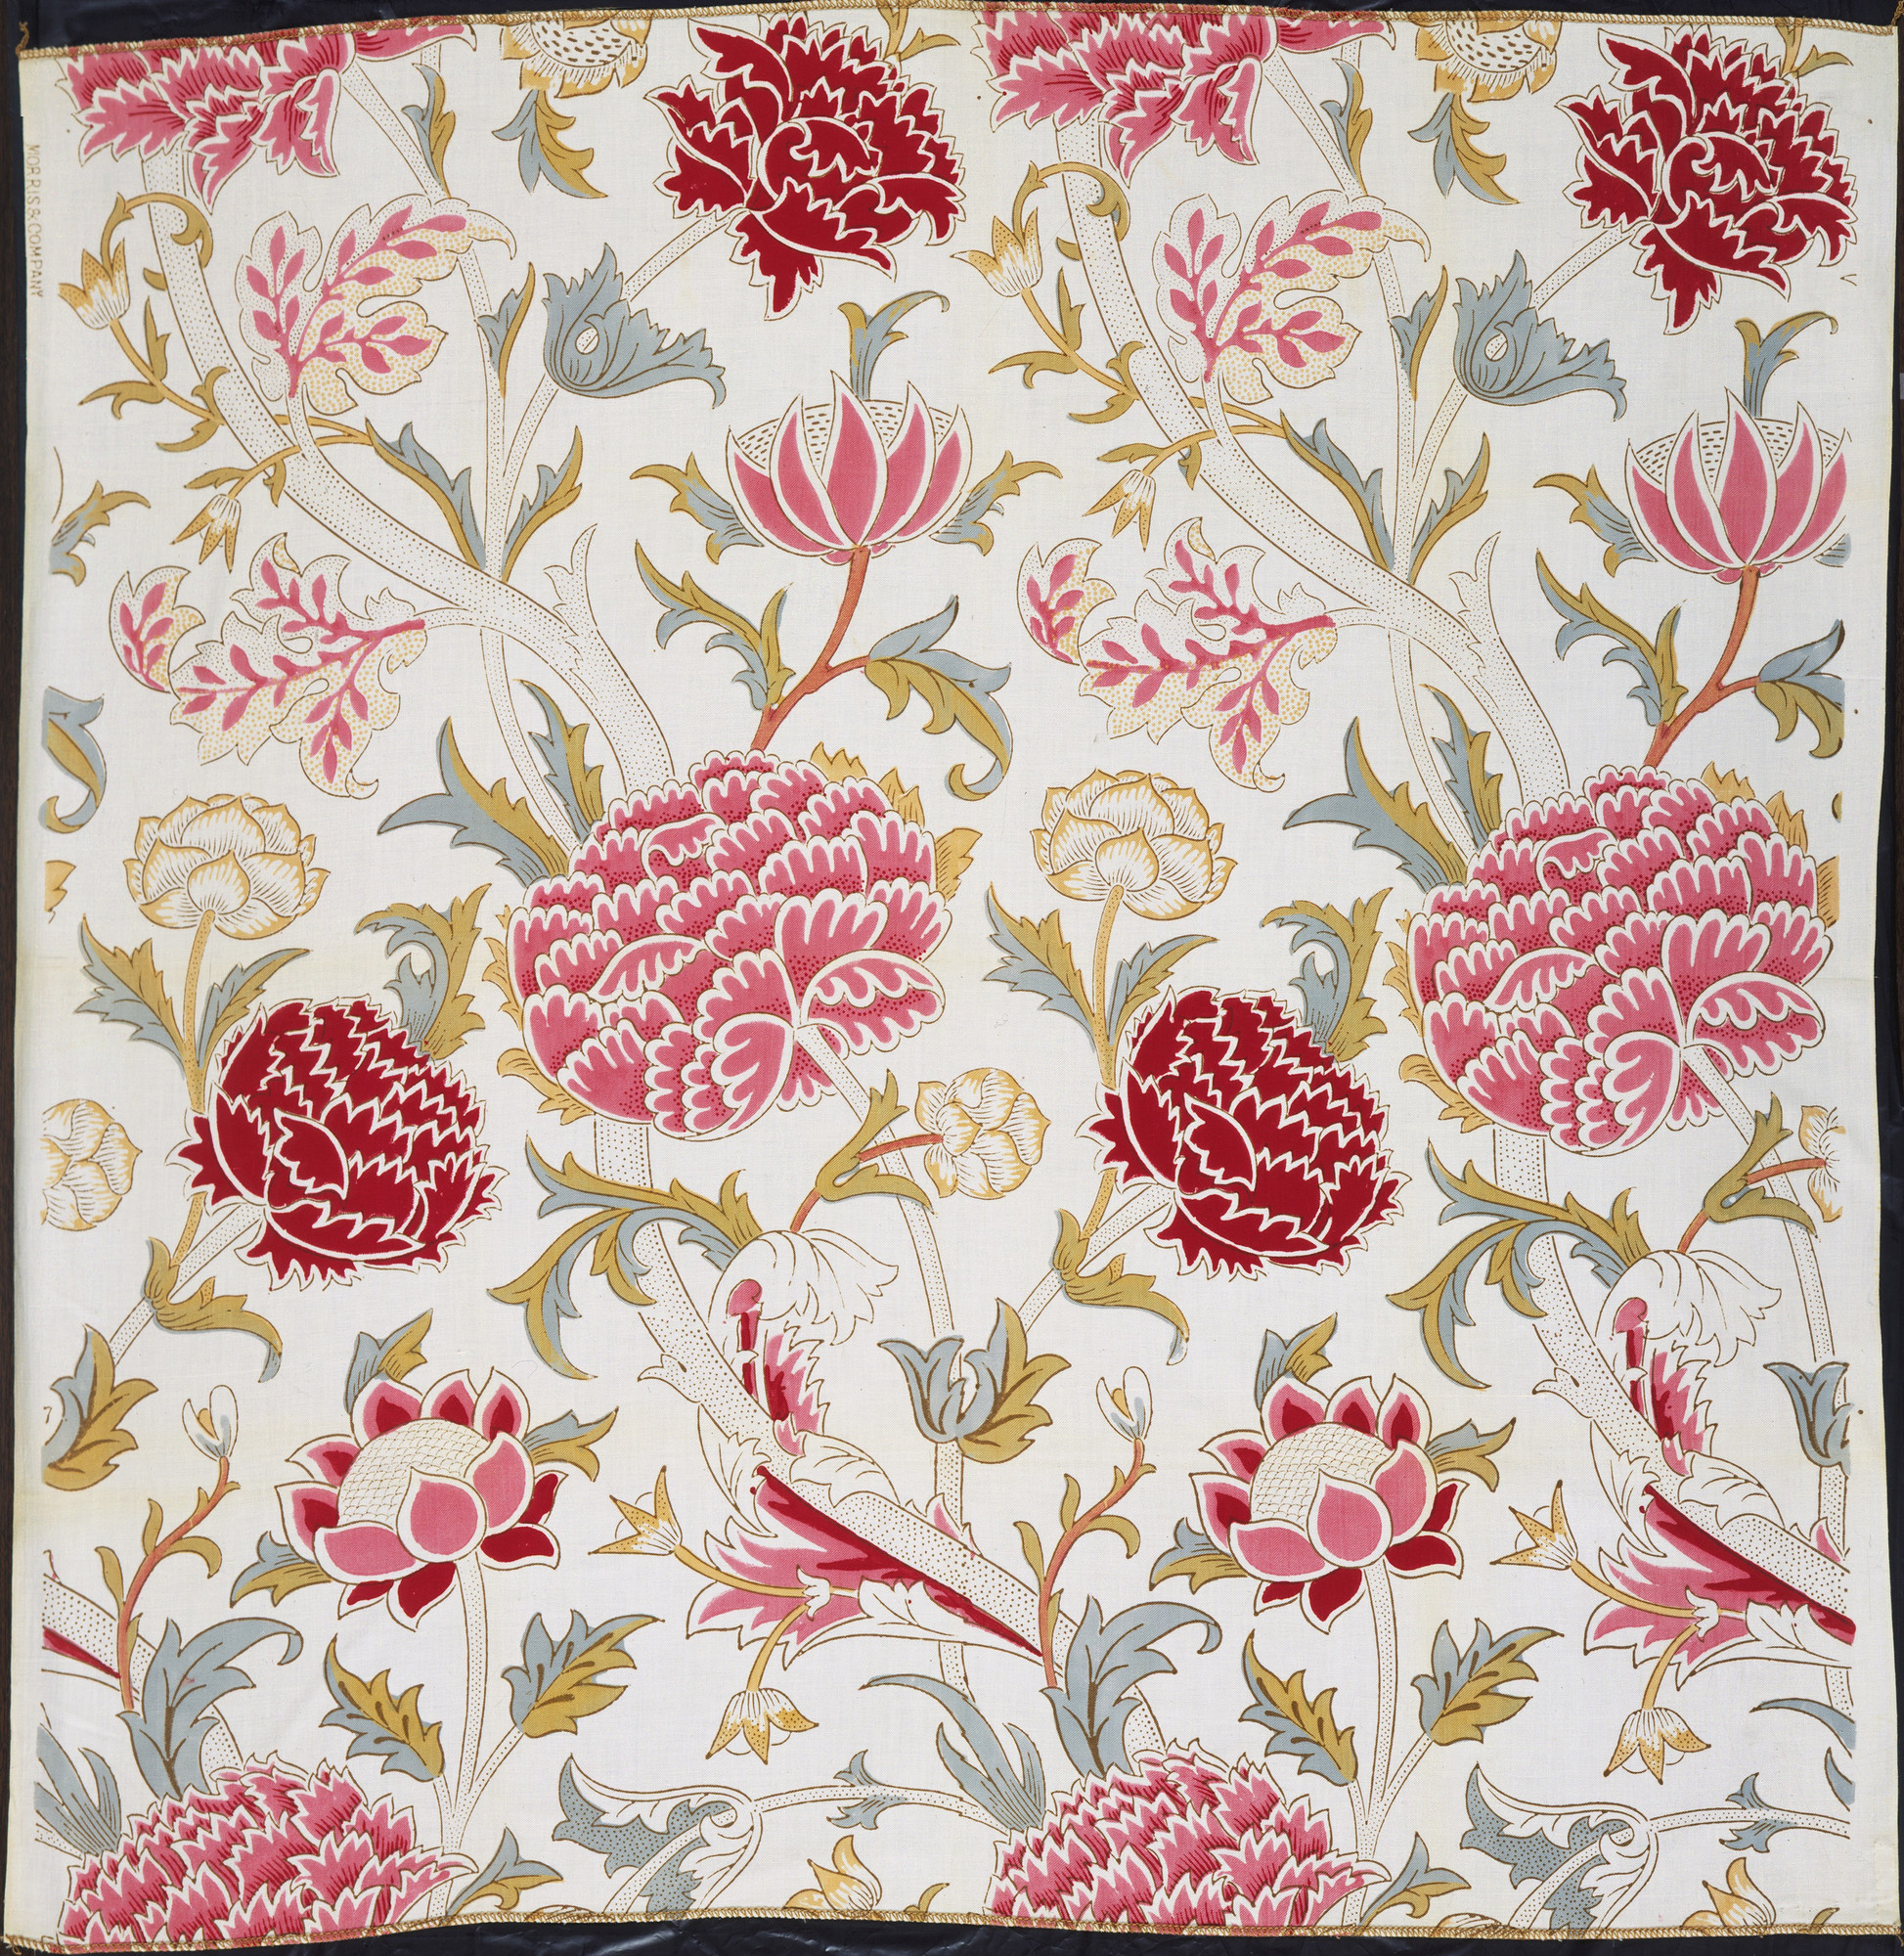 William Morris. Chrysanthemum Pattern Printed Fabric (no. 23612). 1884